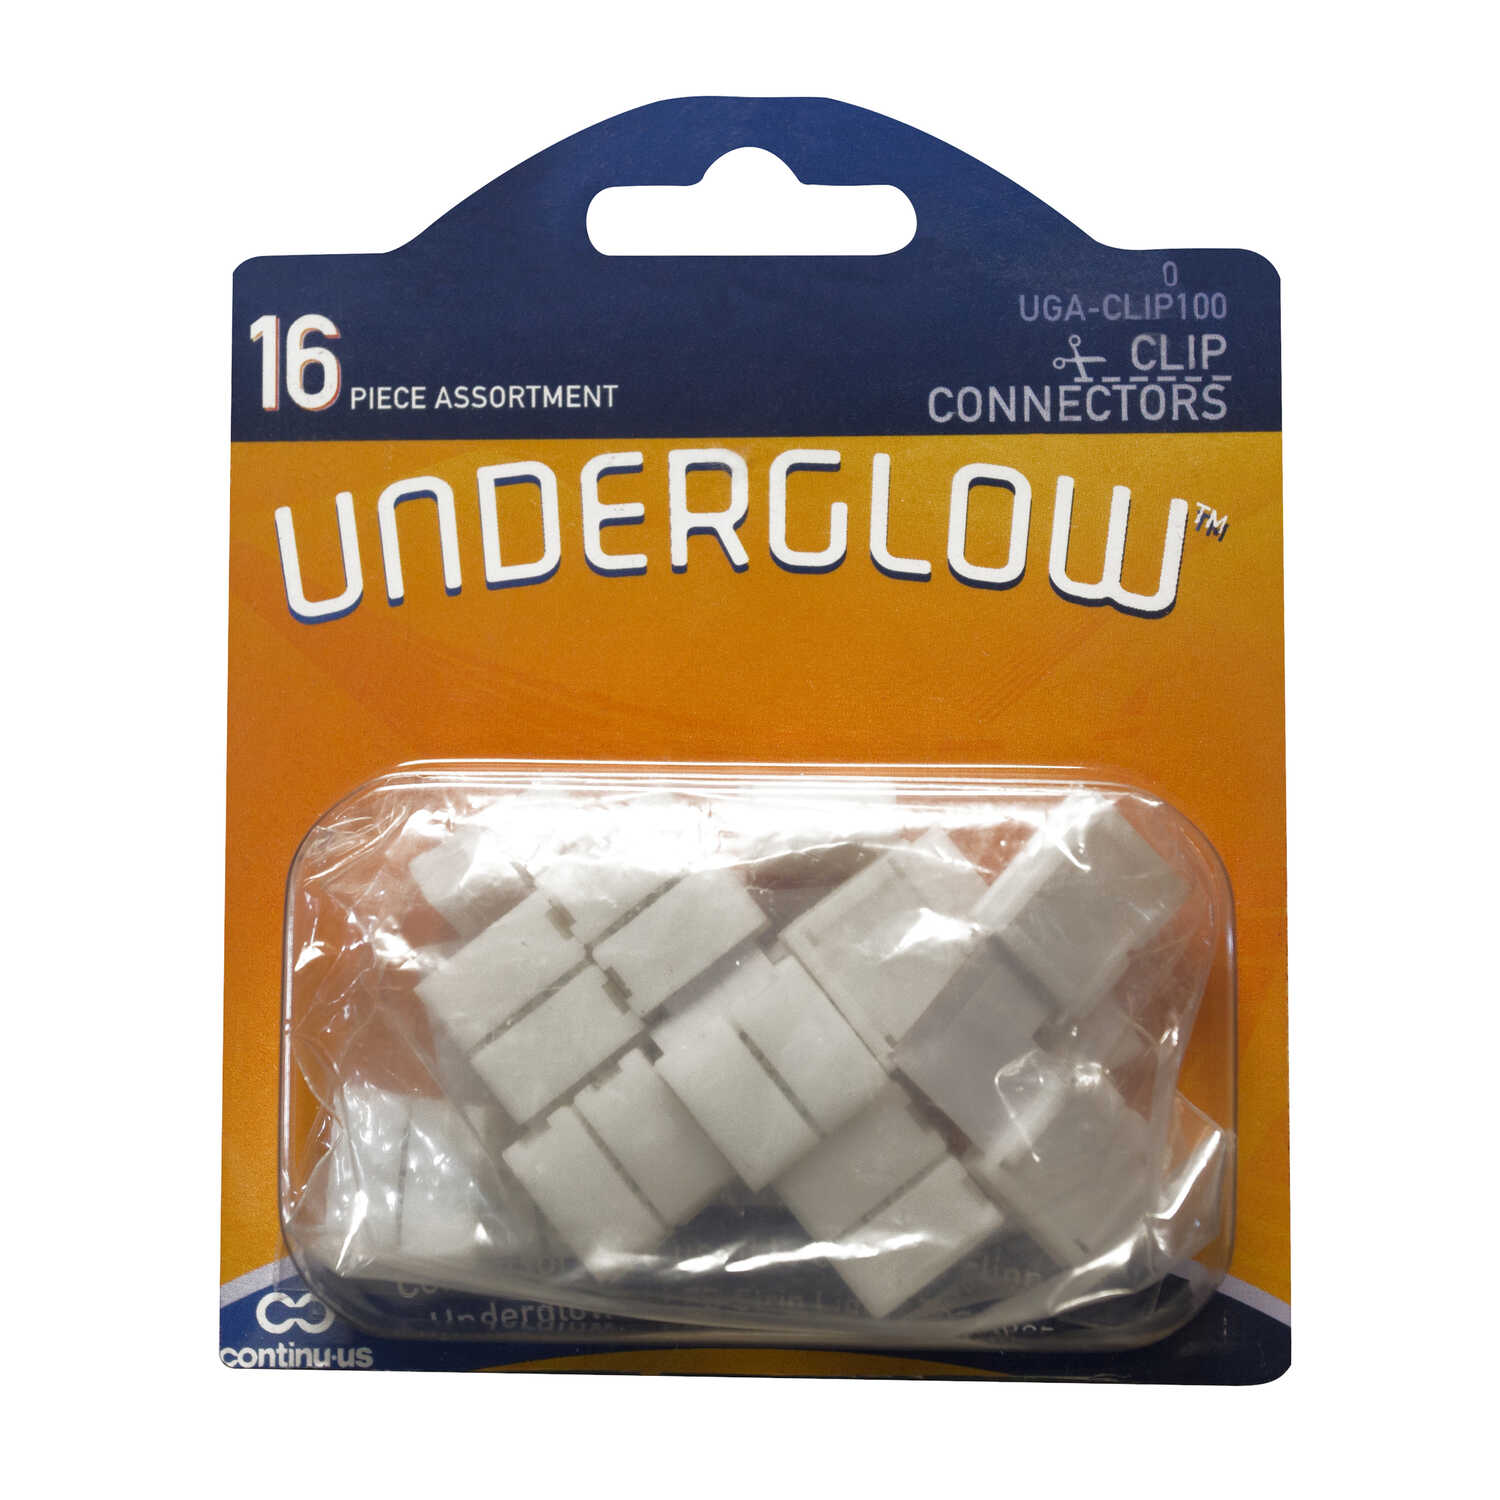 Continu-us  Underglow  White  Plug-In  Extension Kit  LED